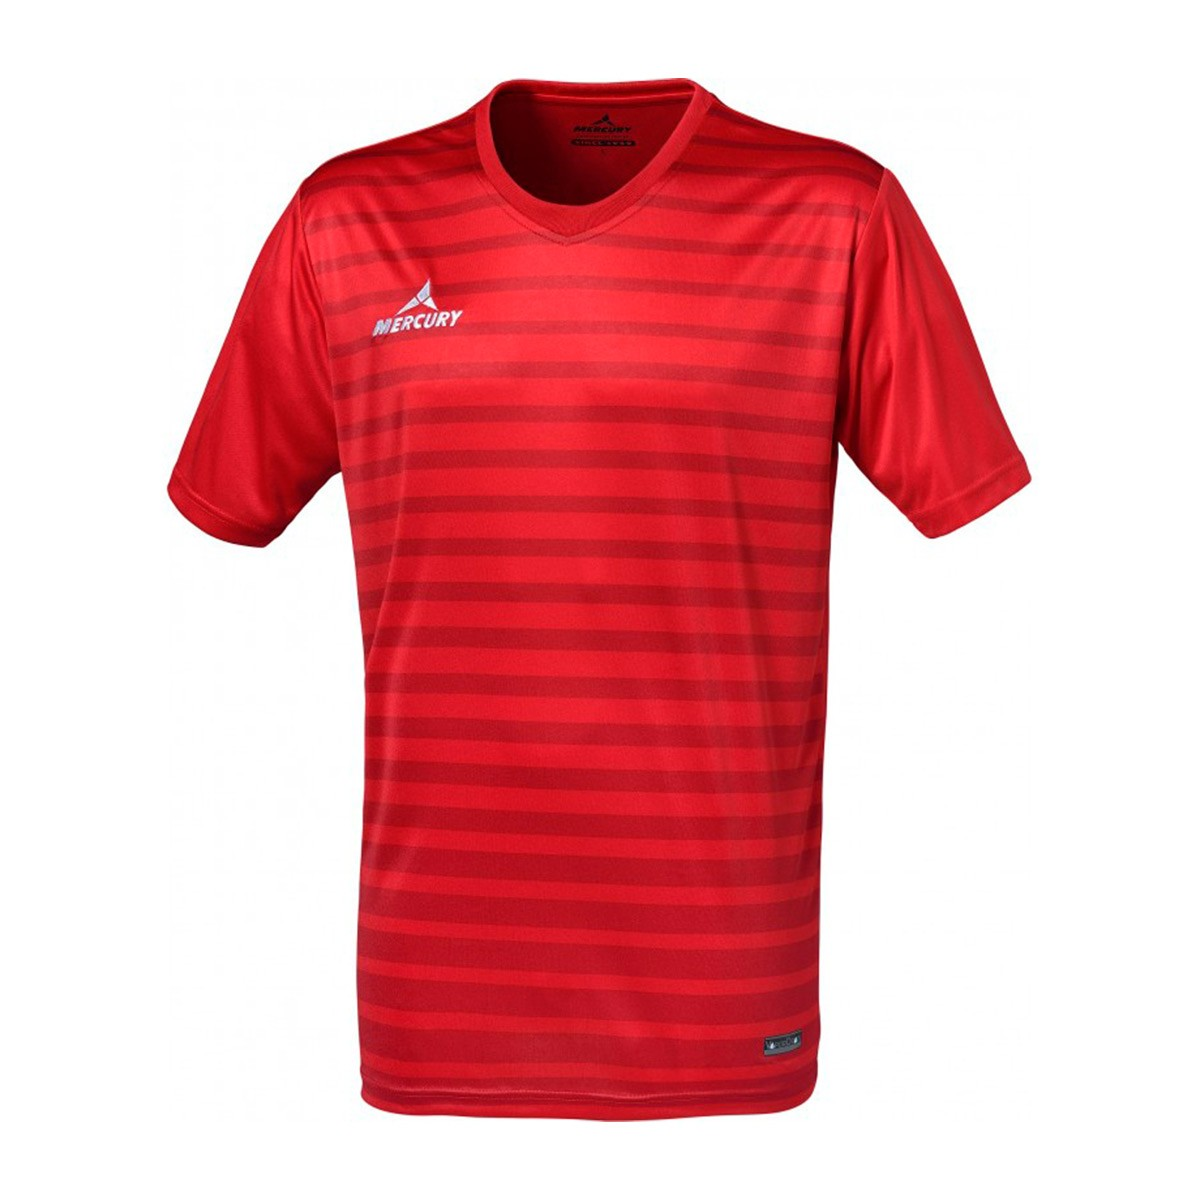 check out 28132 3ee02 Camiseta Chelsea m/c Rojo